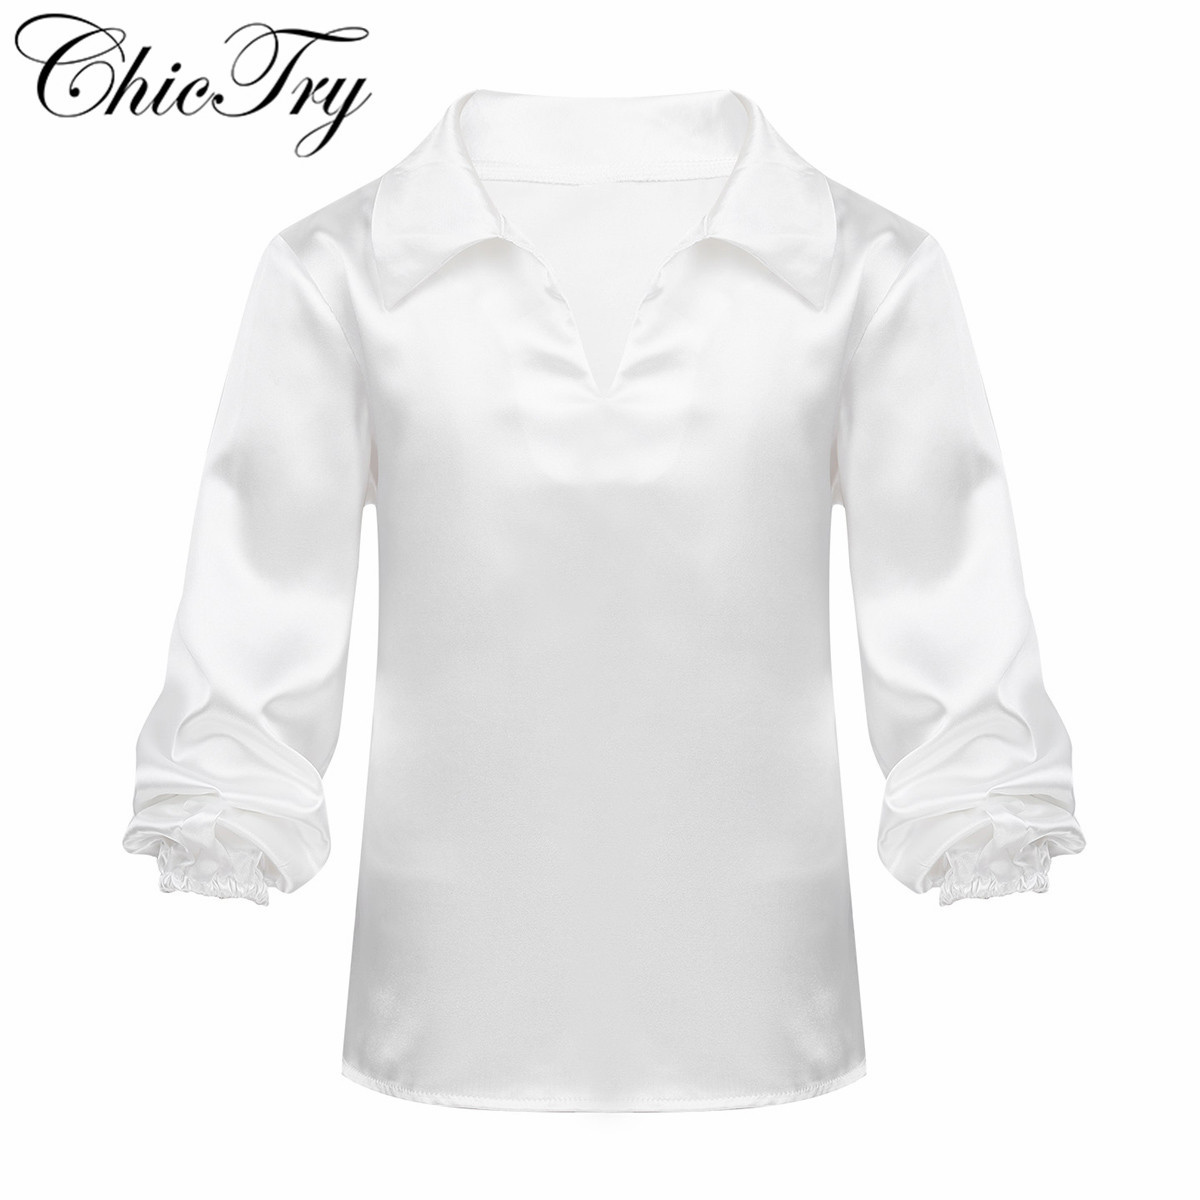 Kids Boys Children Satin Finish Spread Collar Pull-on Ballet Shirt Dance Costume Dancewear For Training Exam Stage Performance